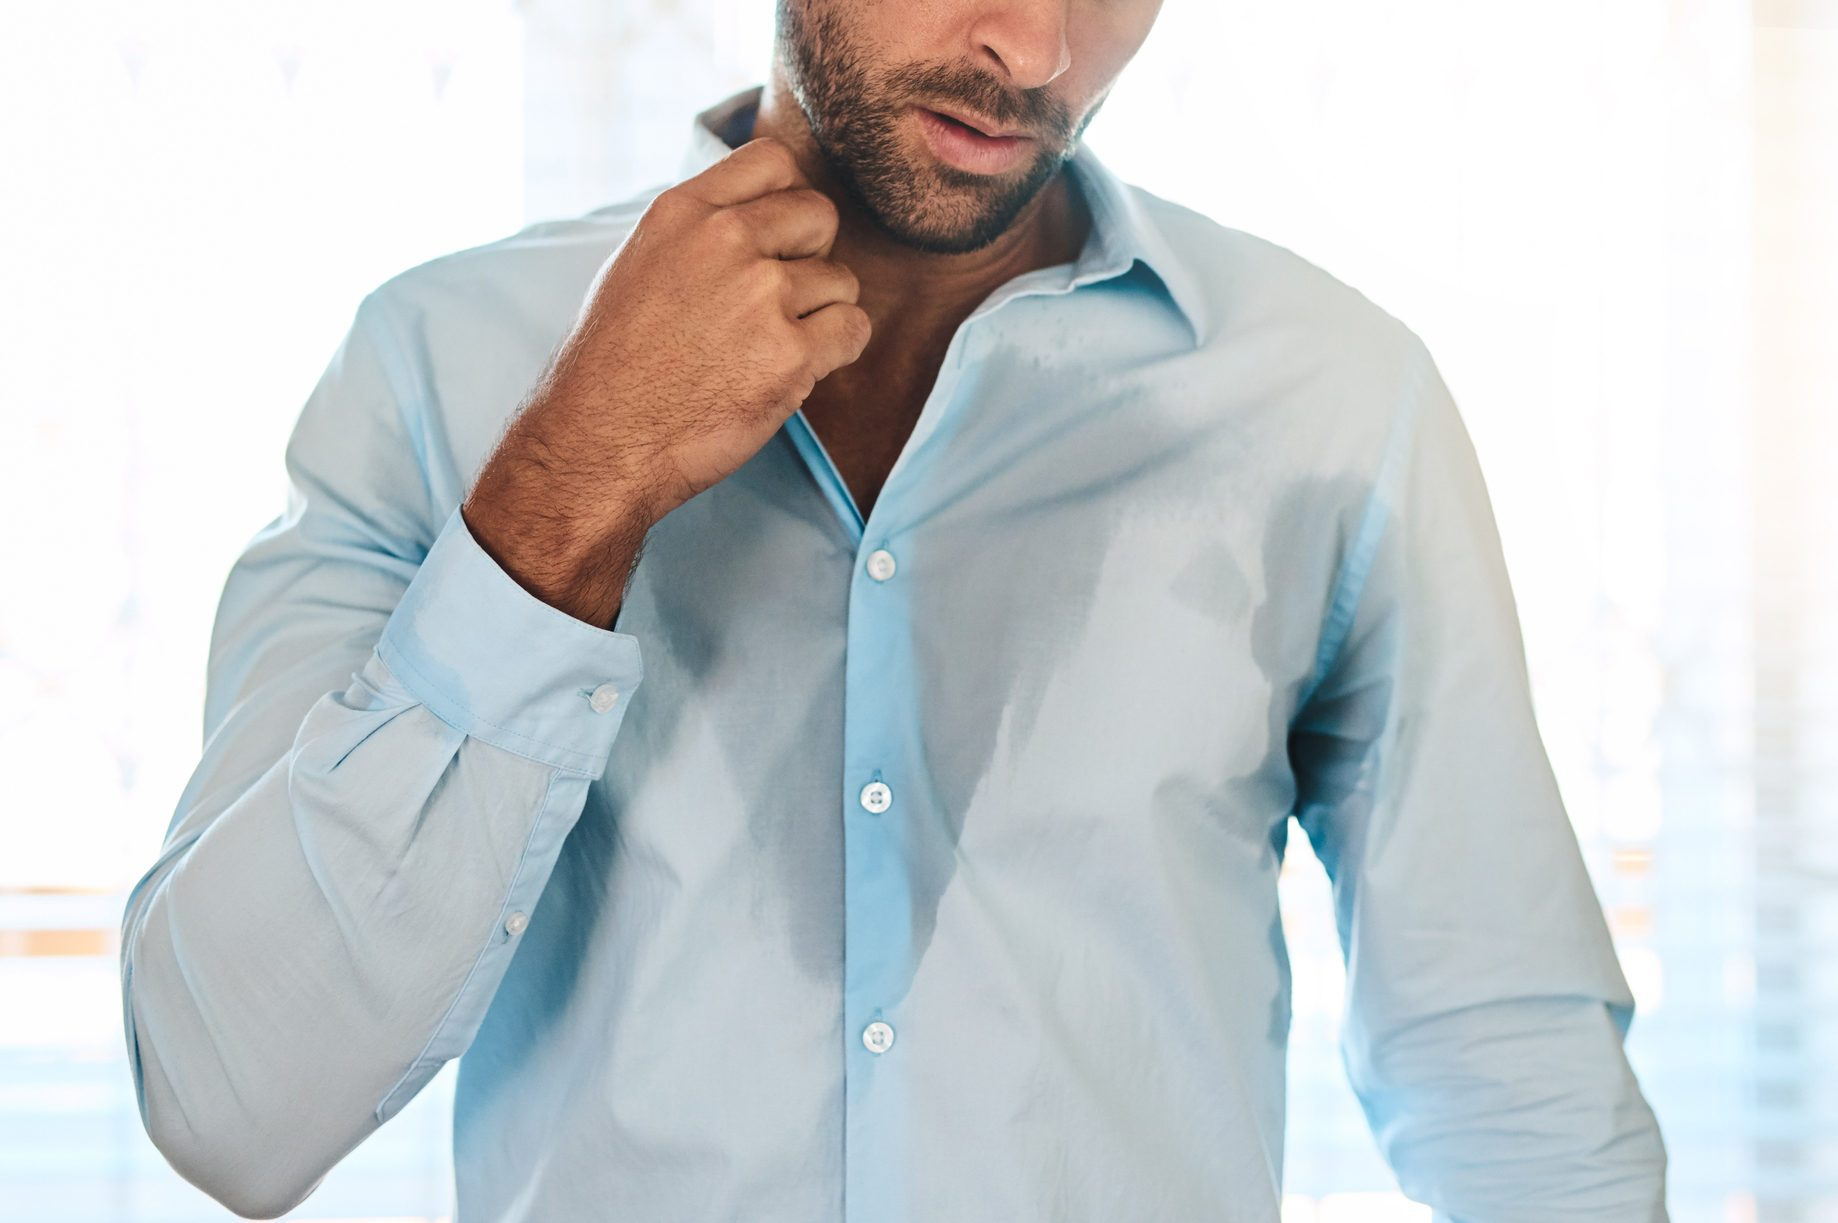 man sweating through shirt